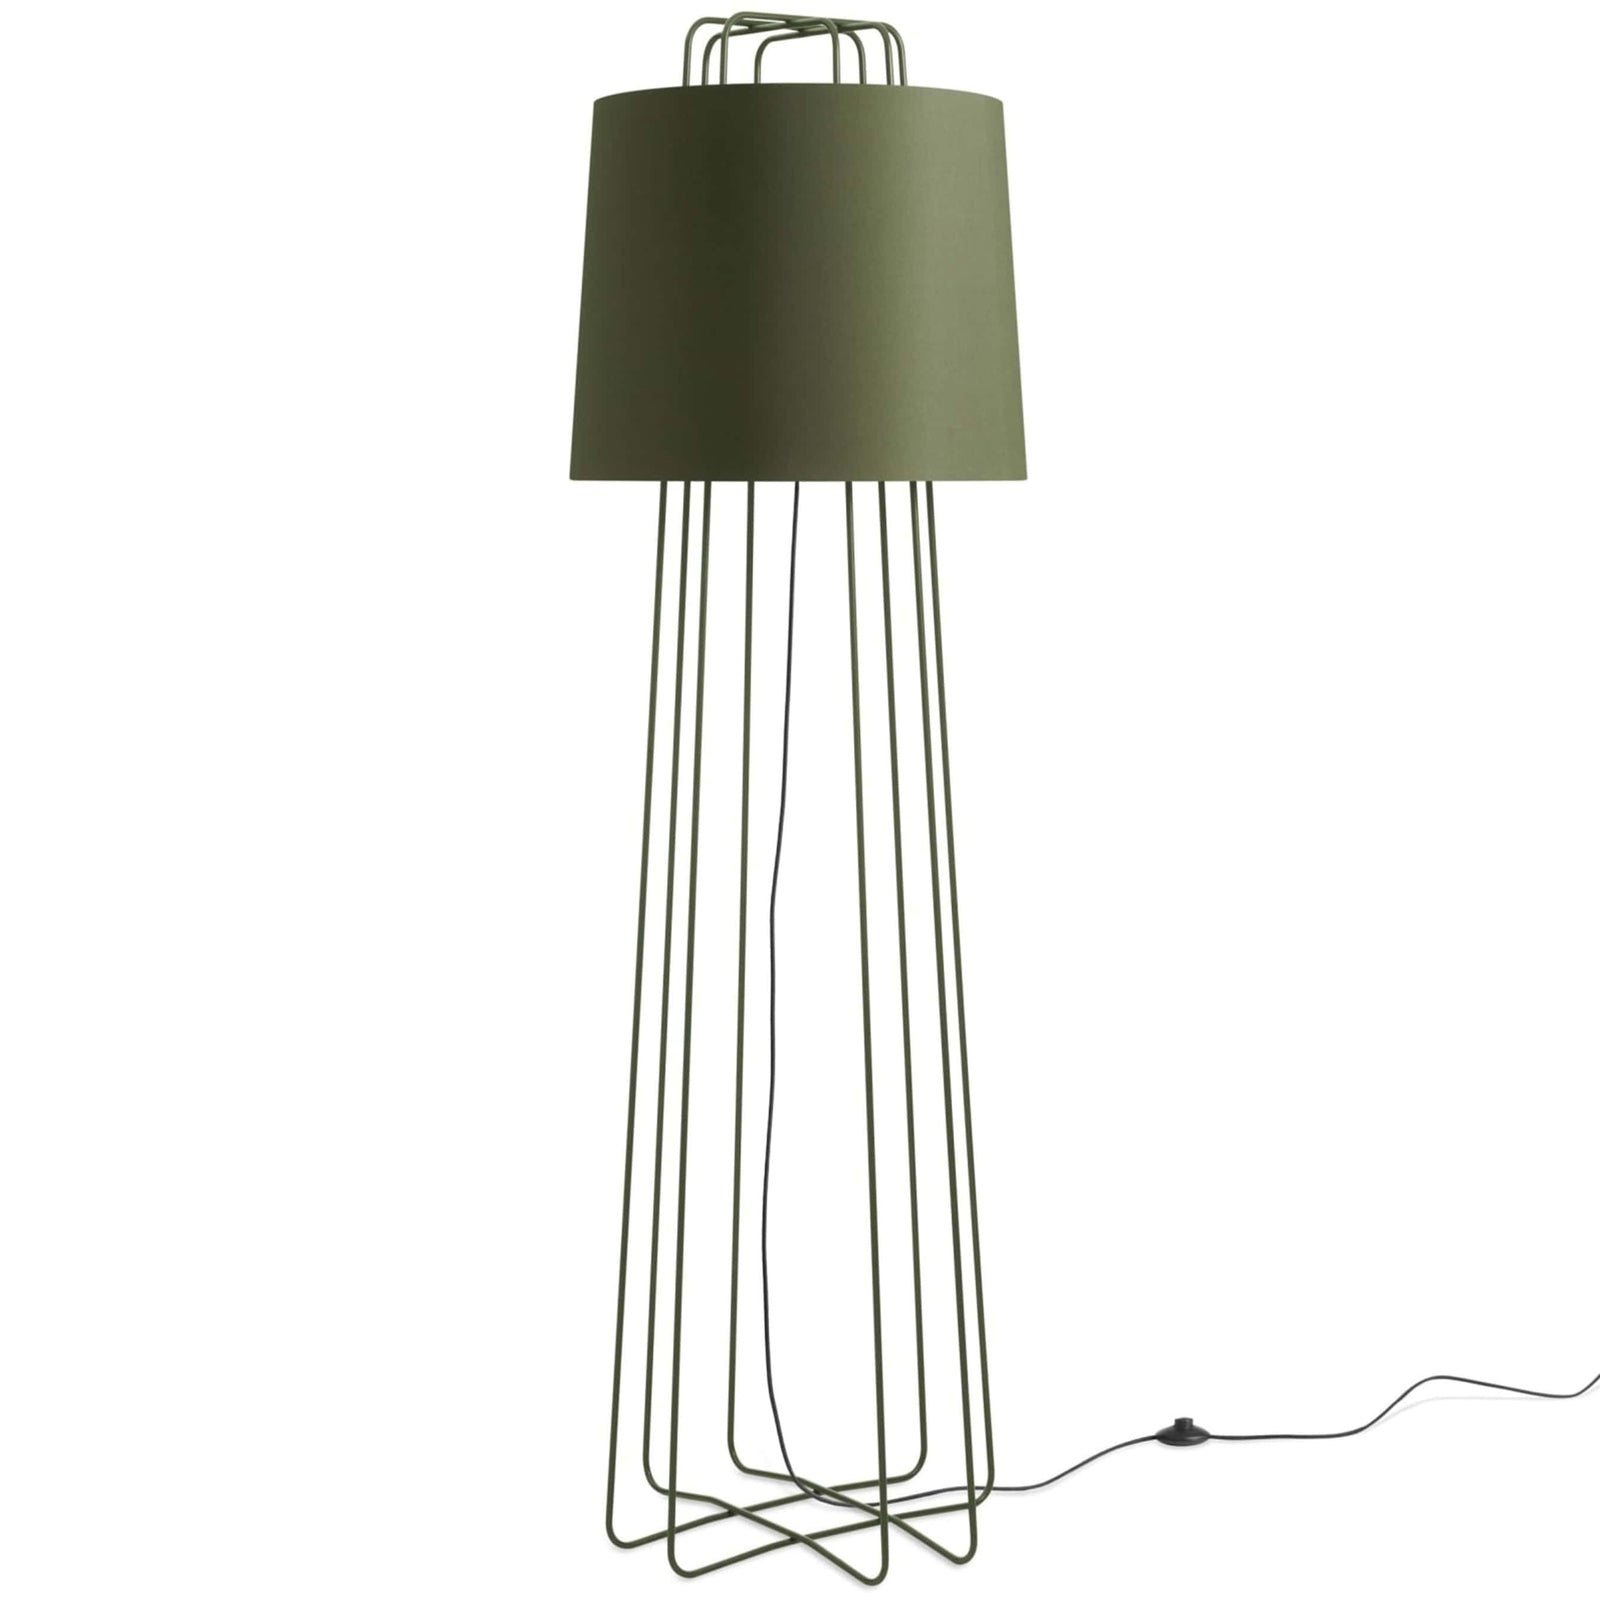 Blu Dot Lighting Olive Perimeter Floor Lamp